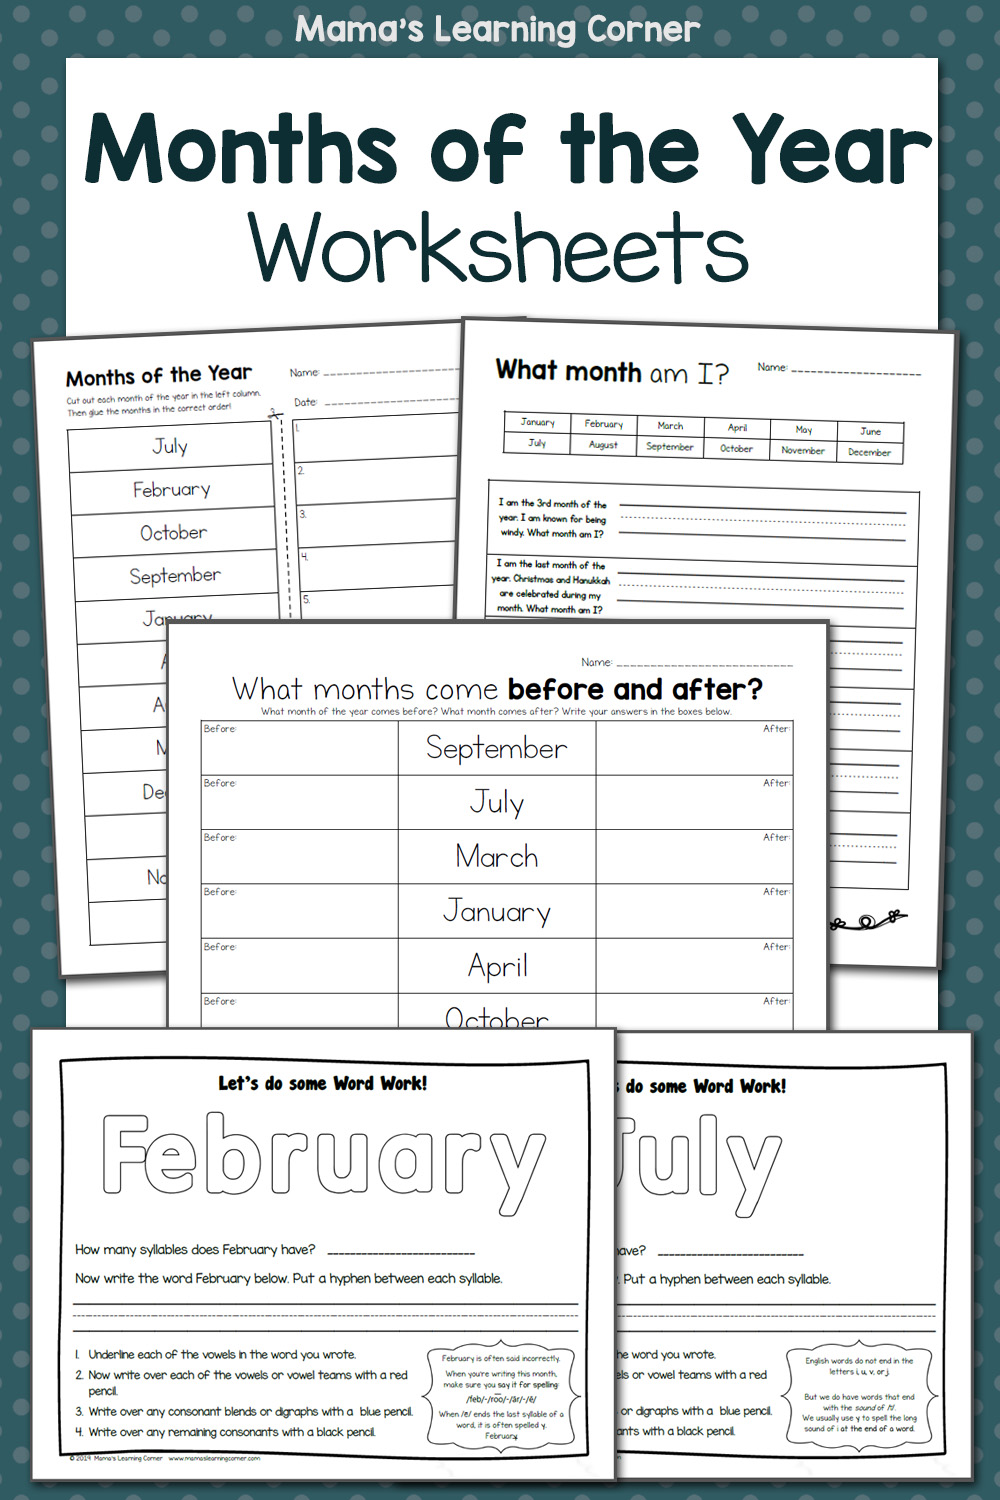 medium resolution of Months of the Year Worksheets - Mamas Learning Corner